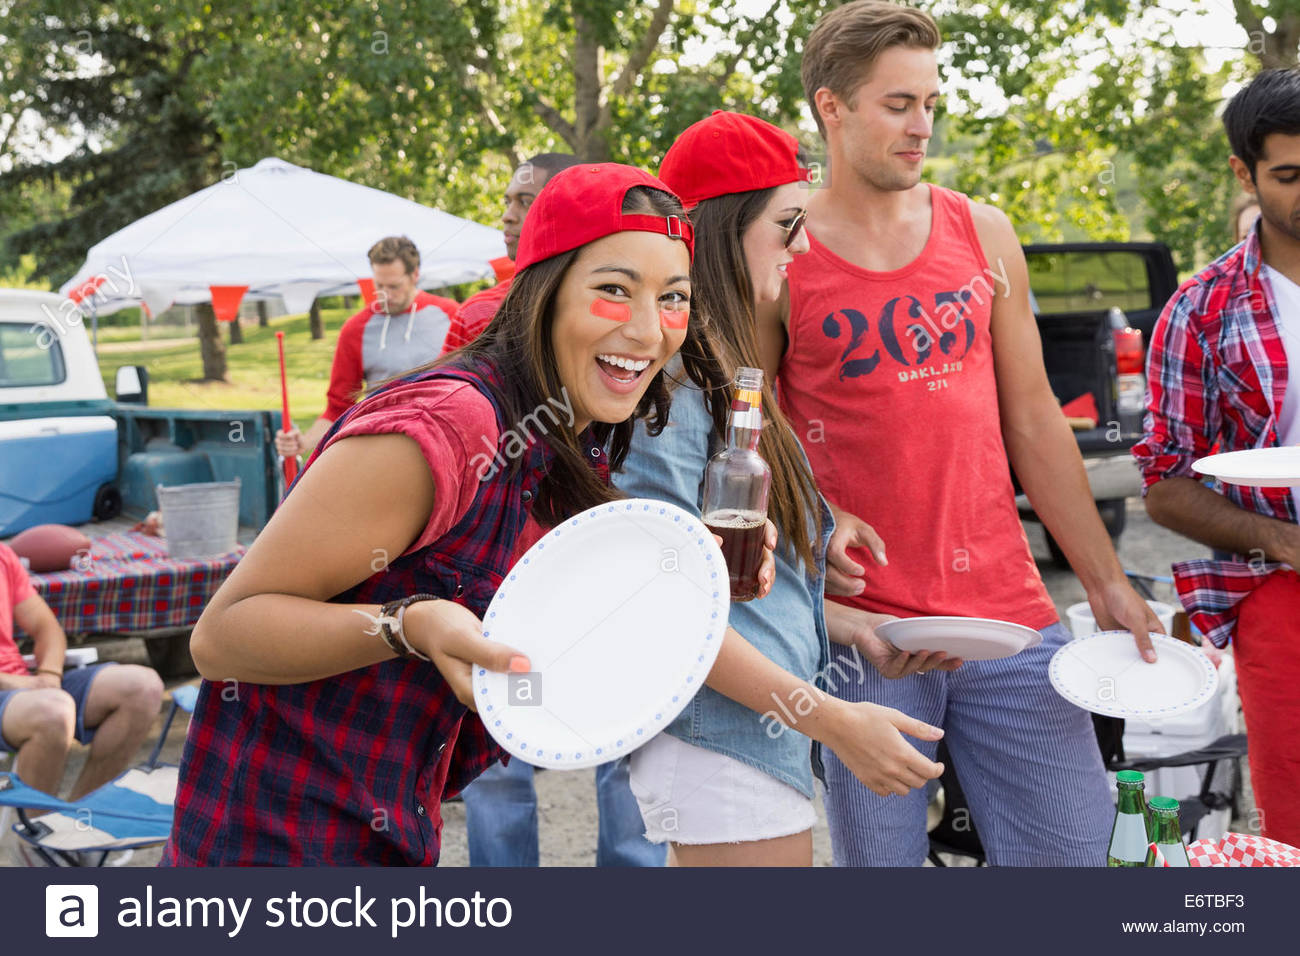 Woman holding plate at tailgate barbecue in field - Stock Image